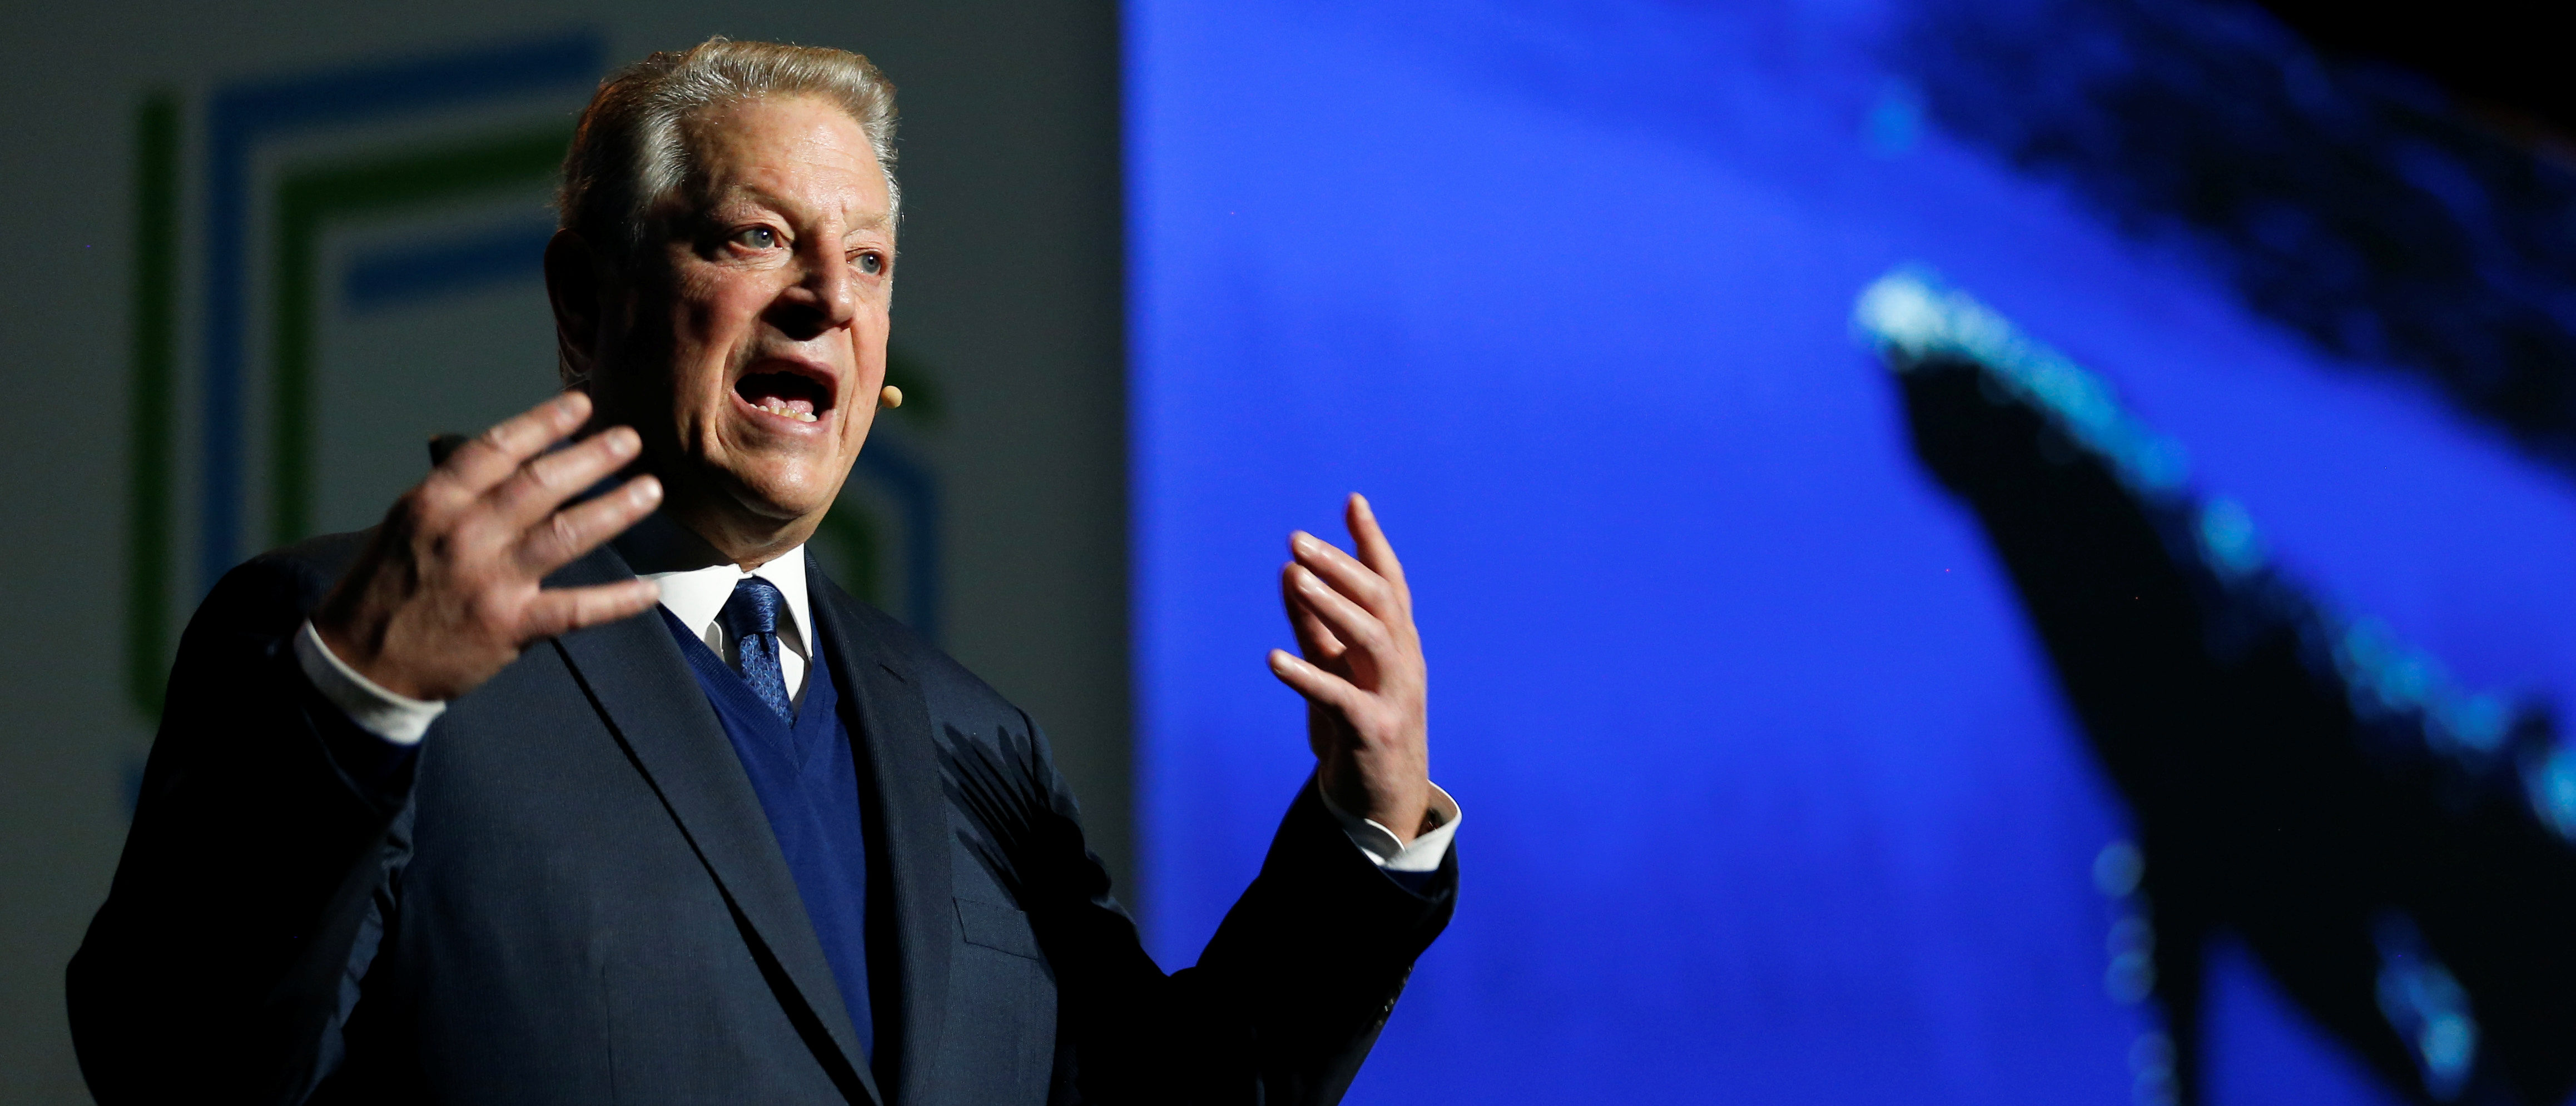 Al Gore, former U.S. Vice President and Climate Reality Project Chairman, gestures as he speaks at the COP24 UN Climate Change Conference 2018 in Katowice, Poland December 12, 2018. Agencja Gazeta/Grzegorz Celejewski/via REUTERS.